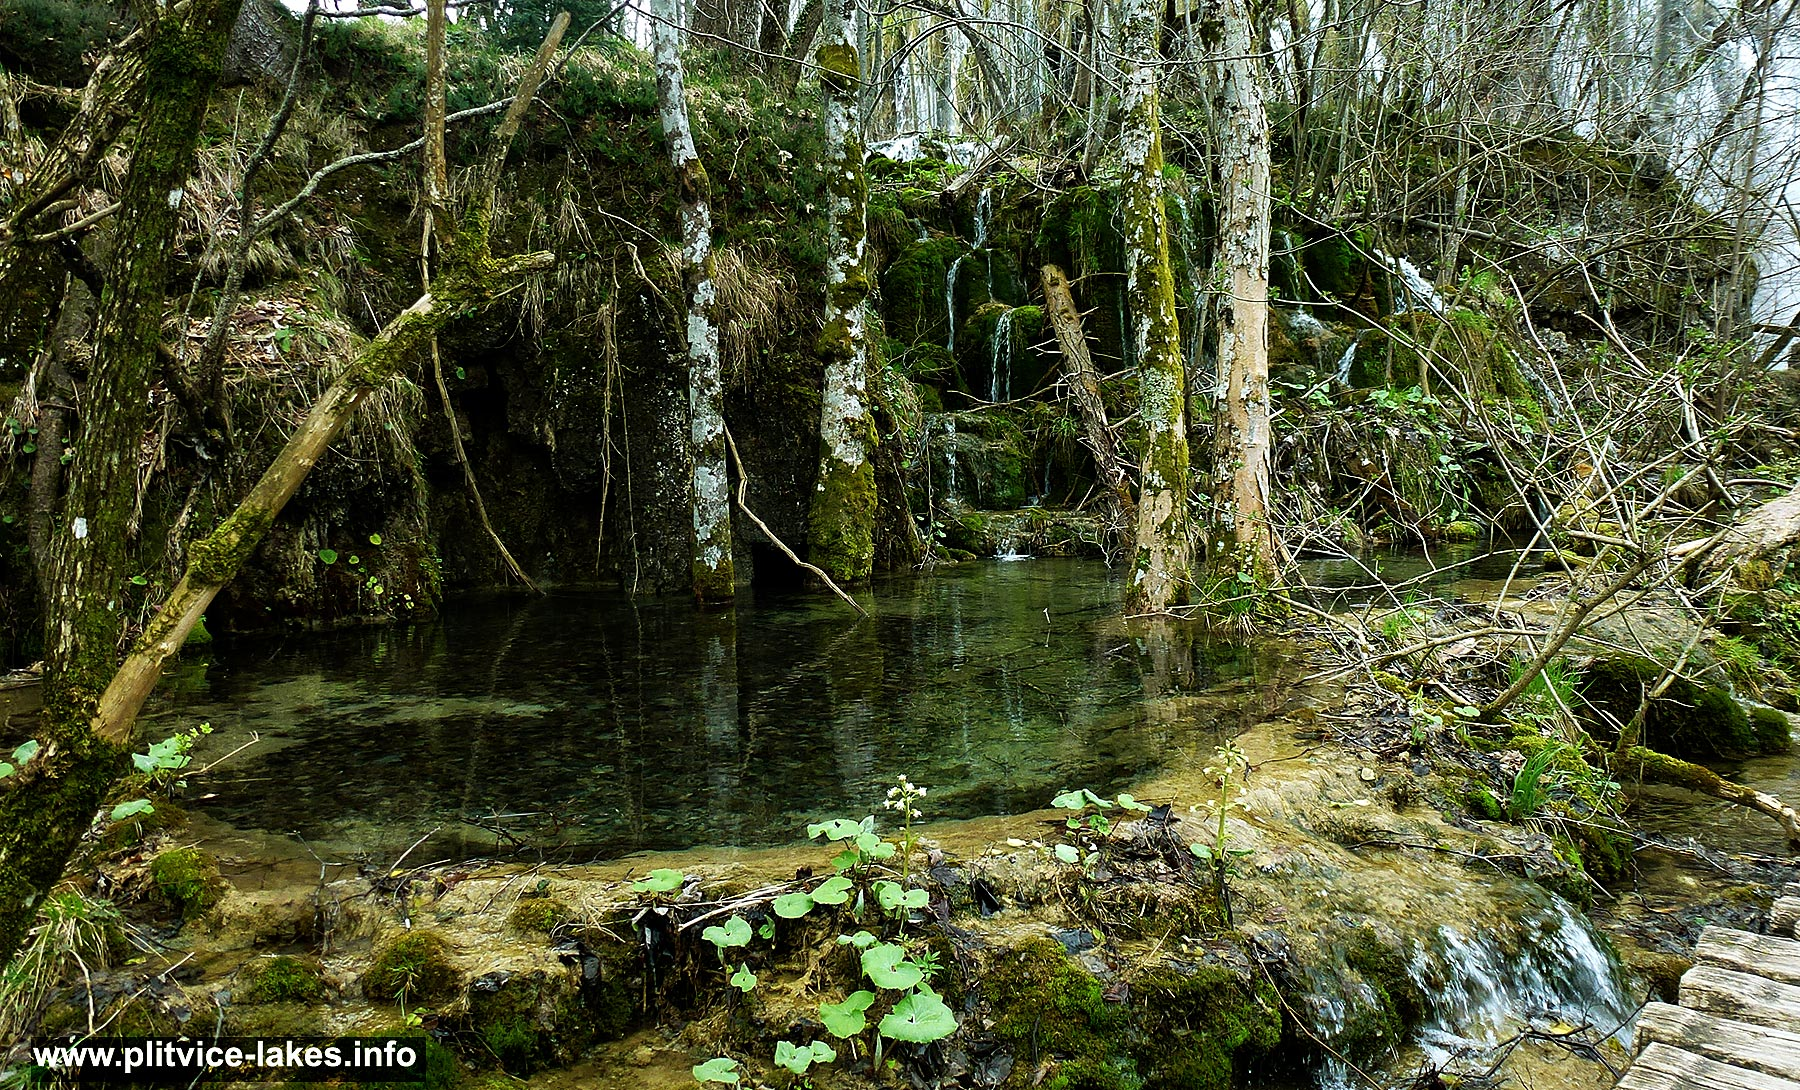 Ancient woodlands add texture, colour and variety to lovely Plitvice walk in the spring